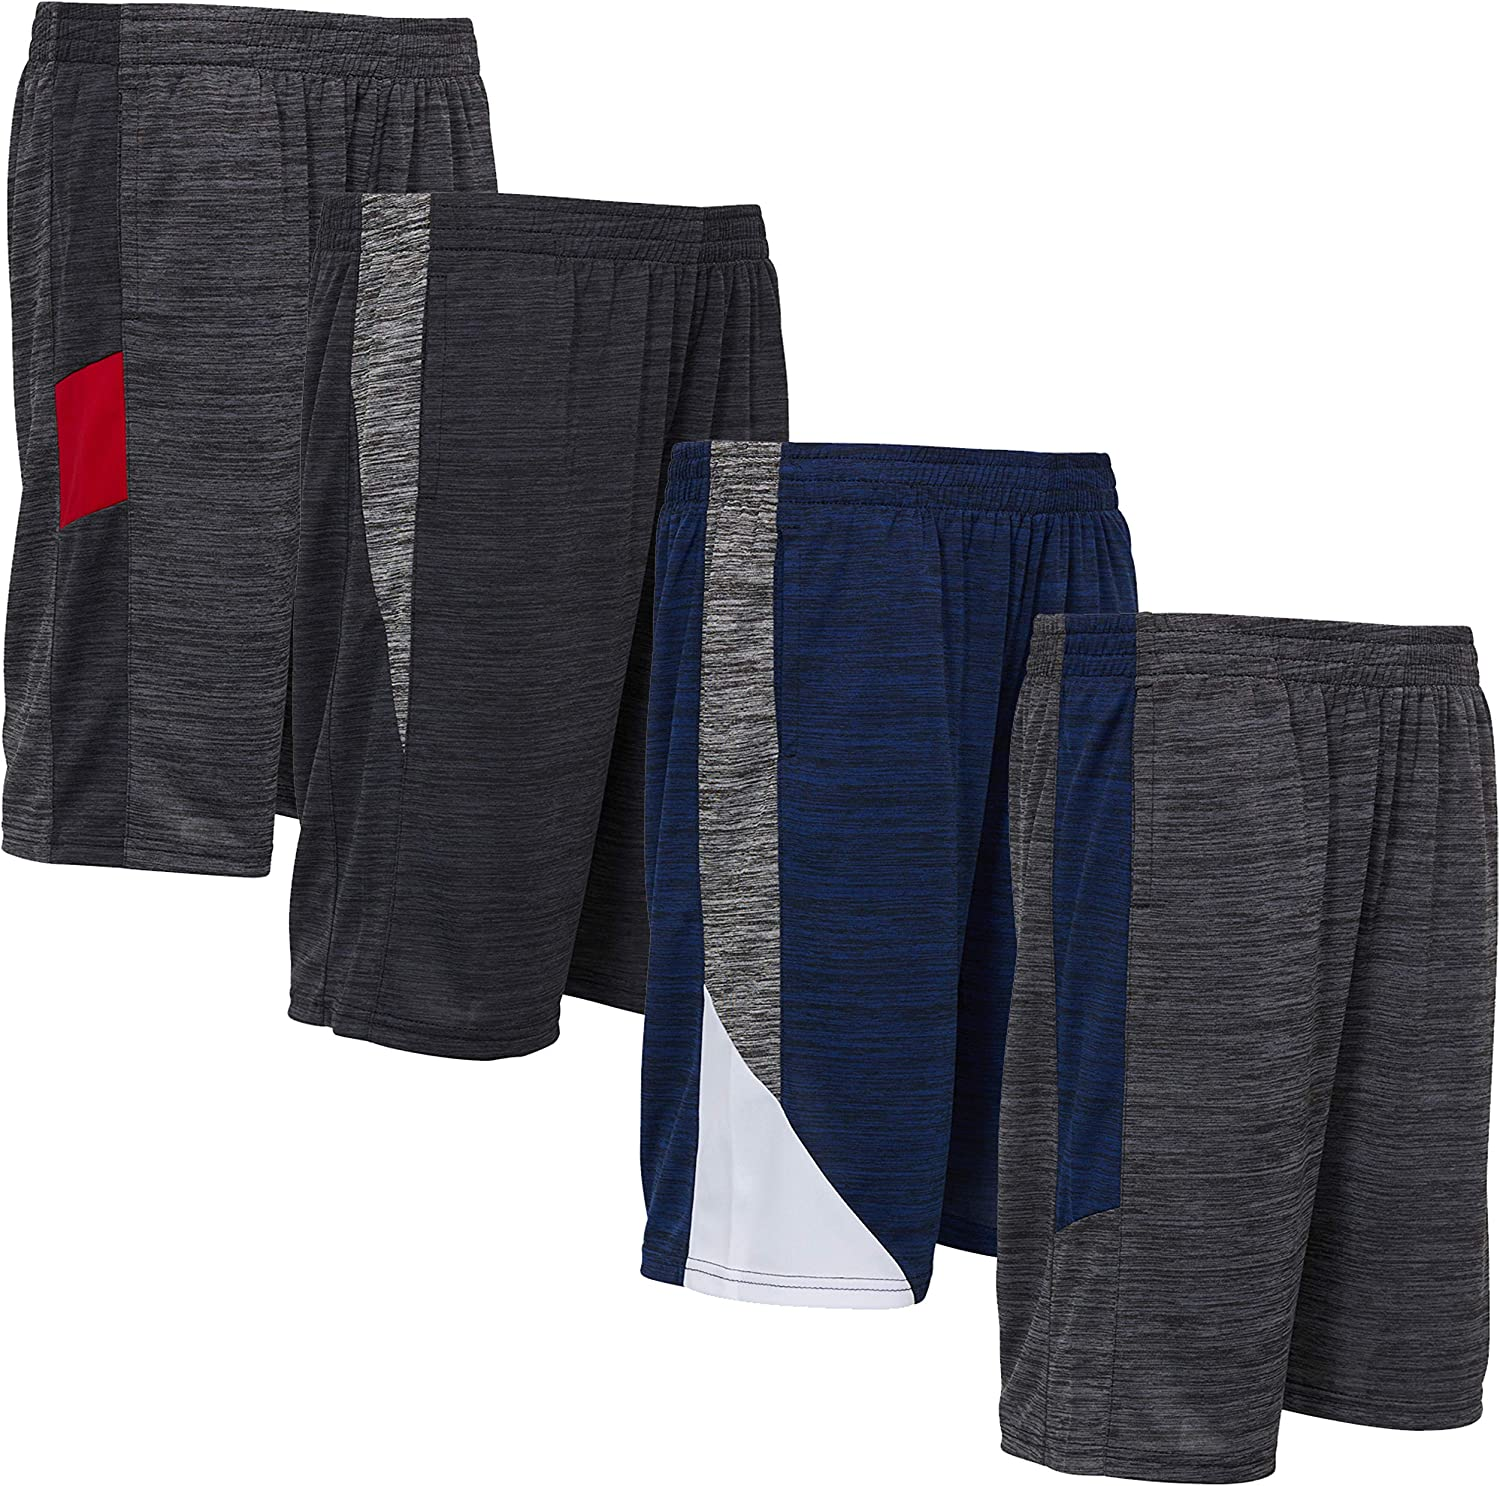 Power Forward 4 Pack: Boys Youth Athletic Active Performance Sports Workout Basketball Lightweight Gym Shorts